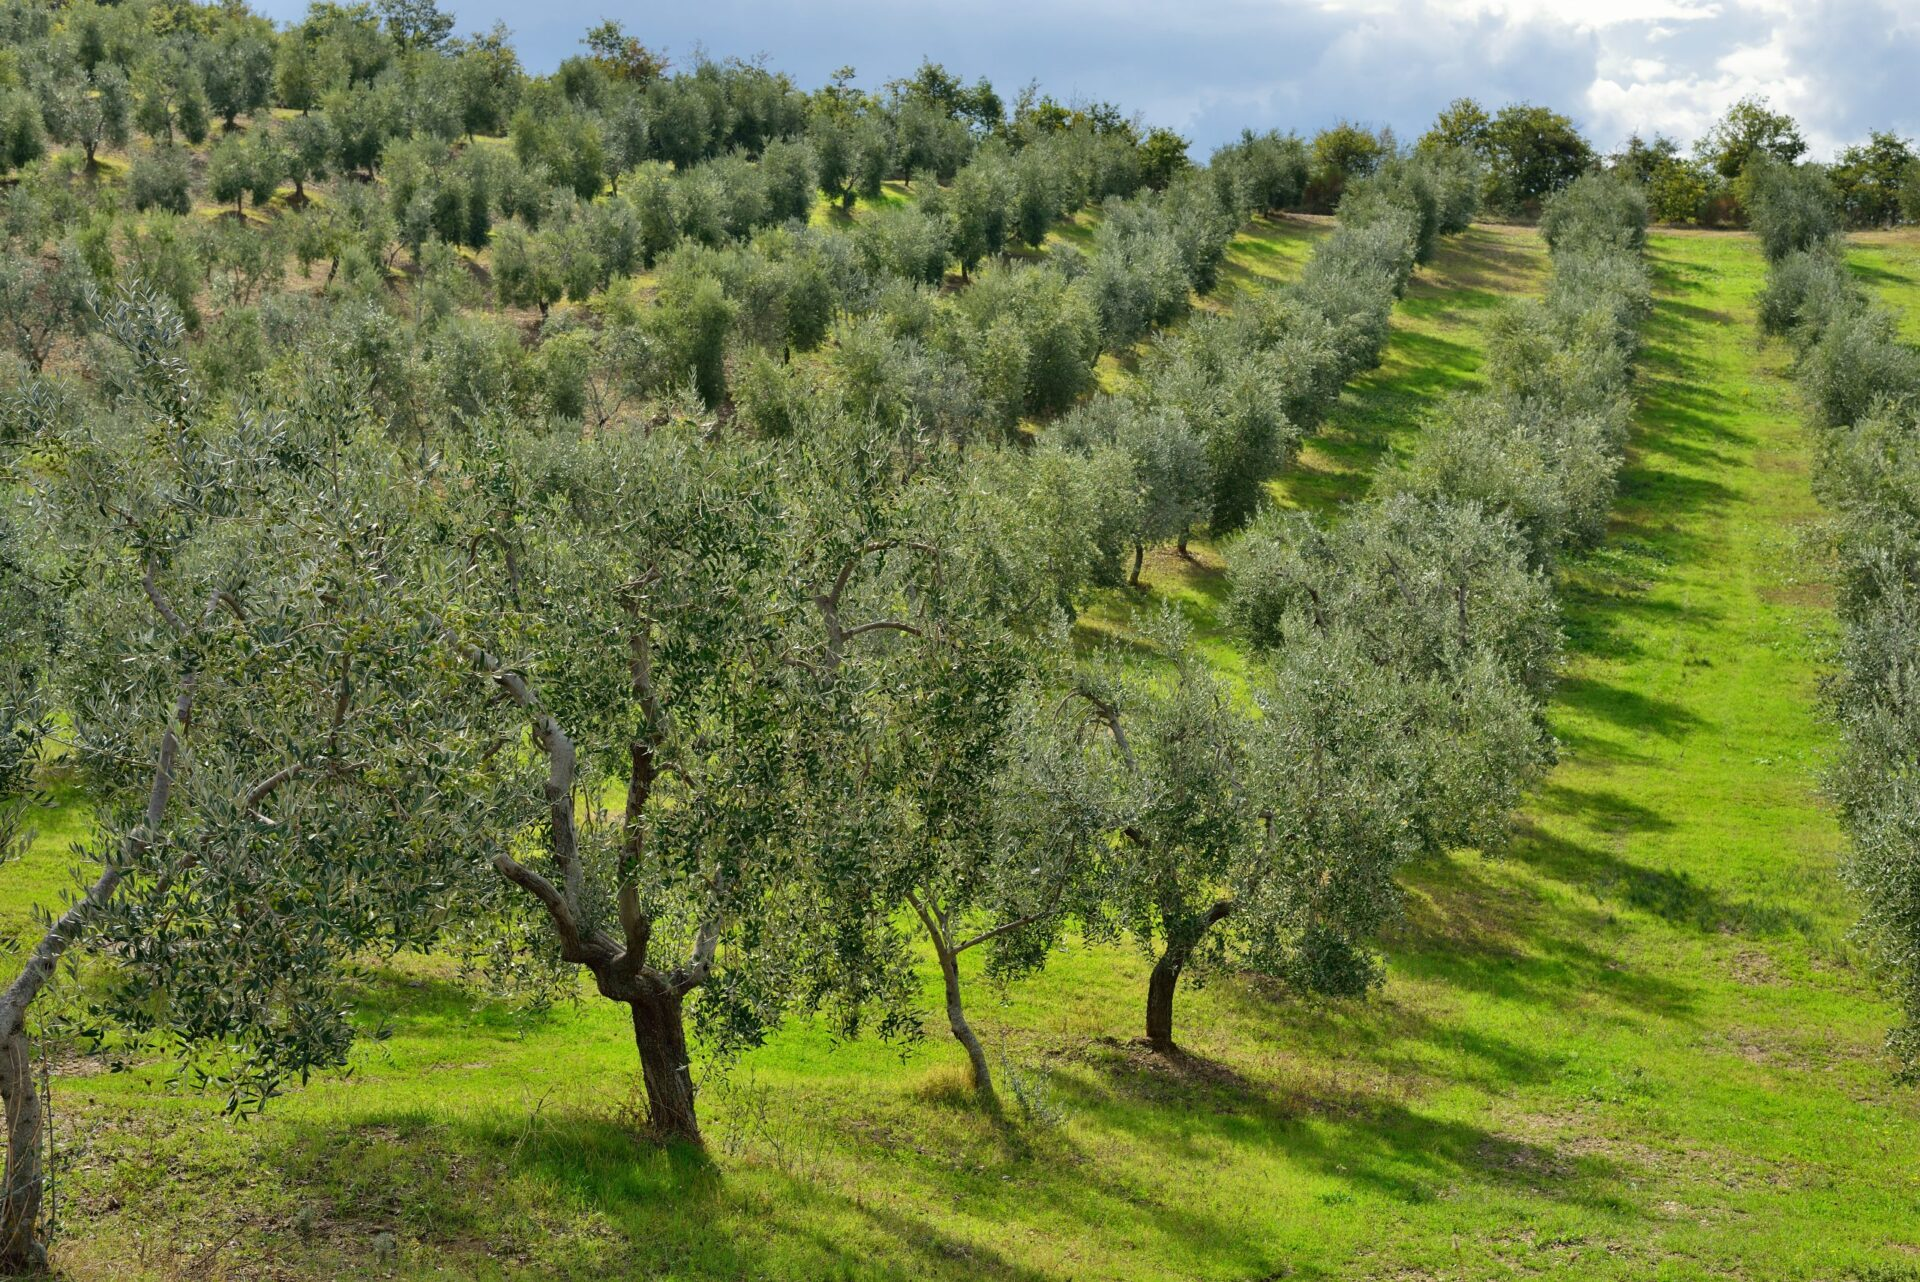 A traditional olive grove